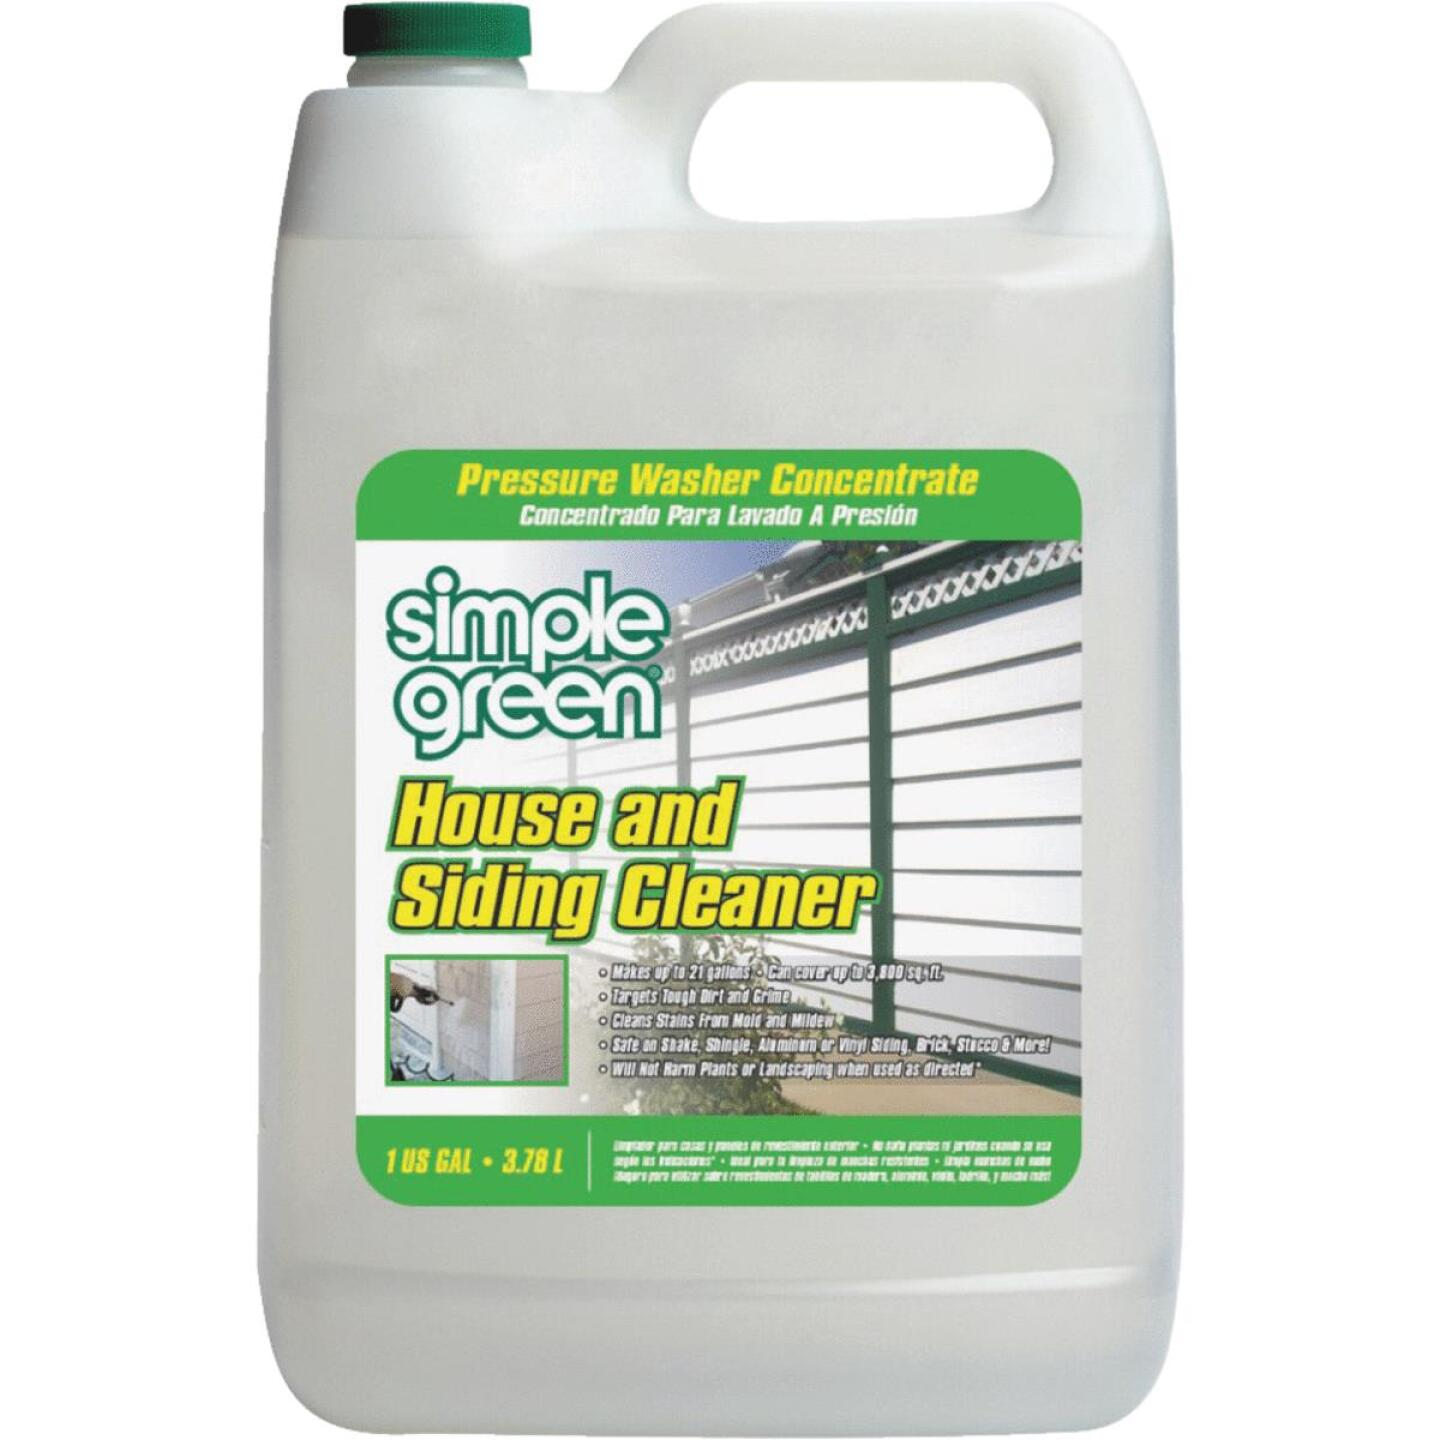 Simple Green House & Siding Pressure Washer Concentrate Cleaner Image 1